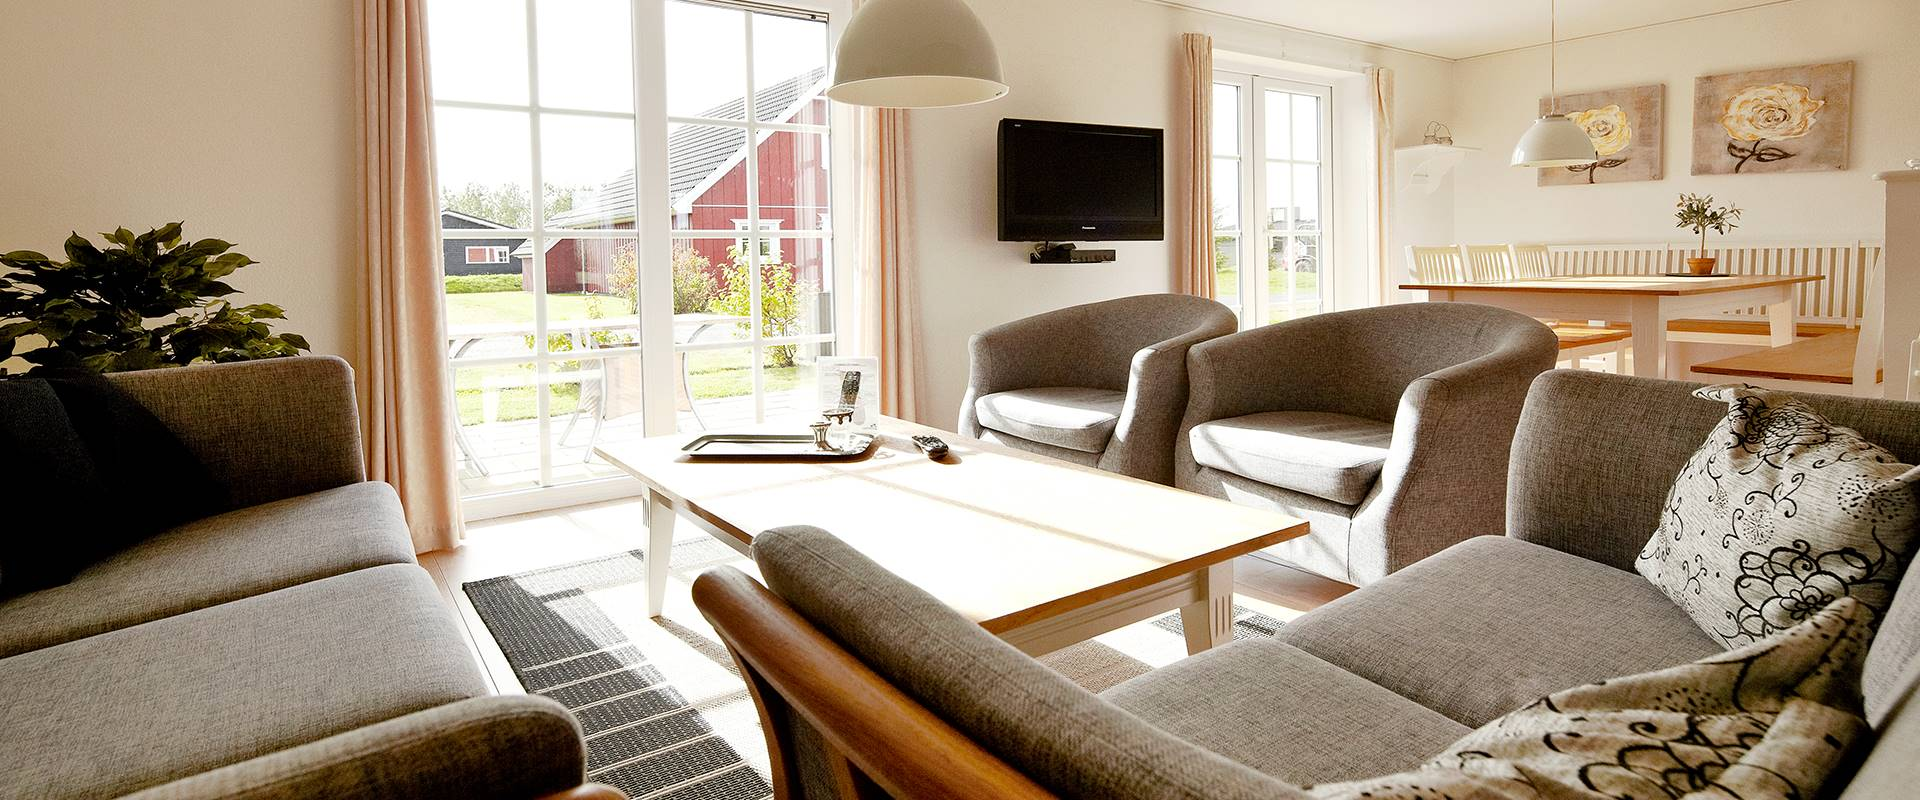 Nordic Plus 8 holiday home Lalandia in Billund